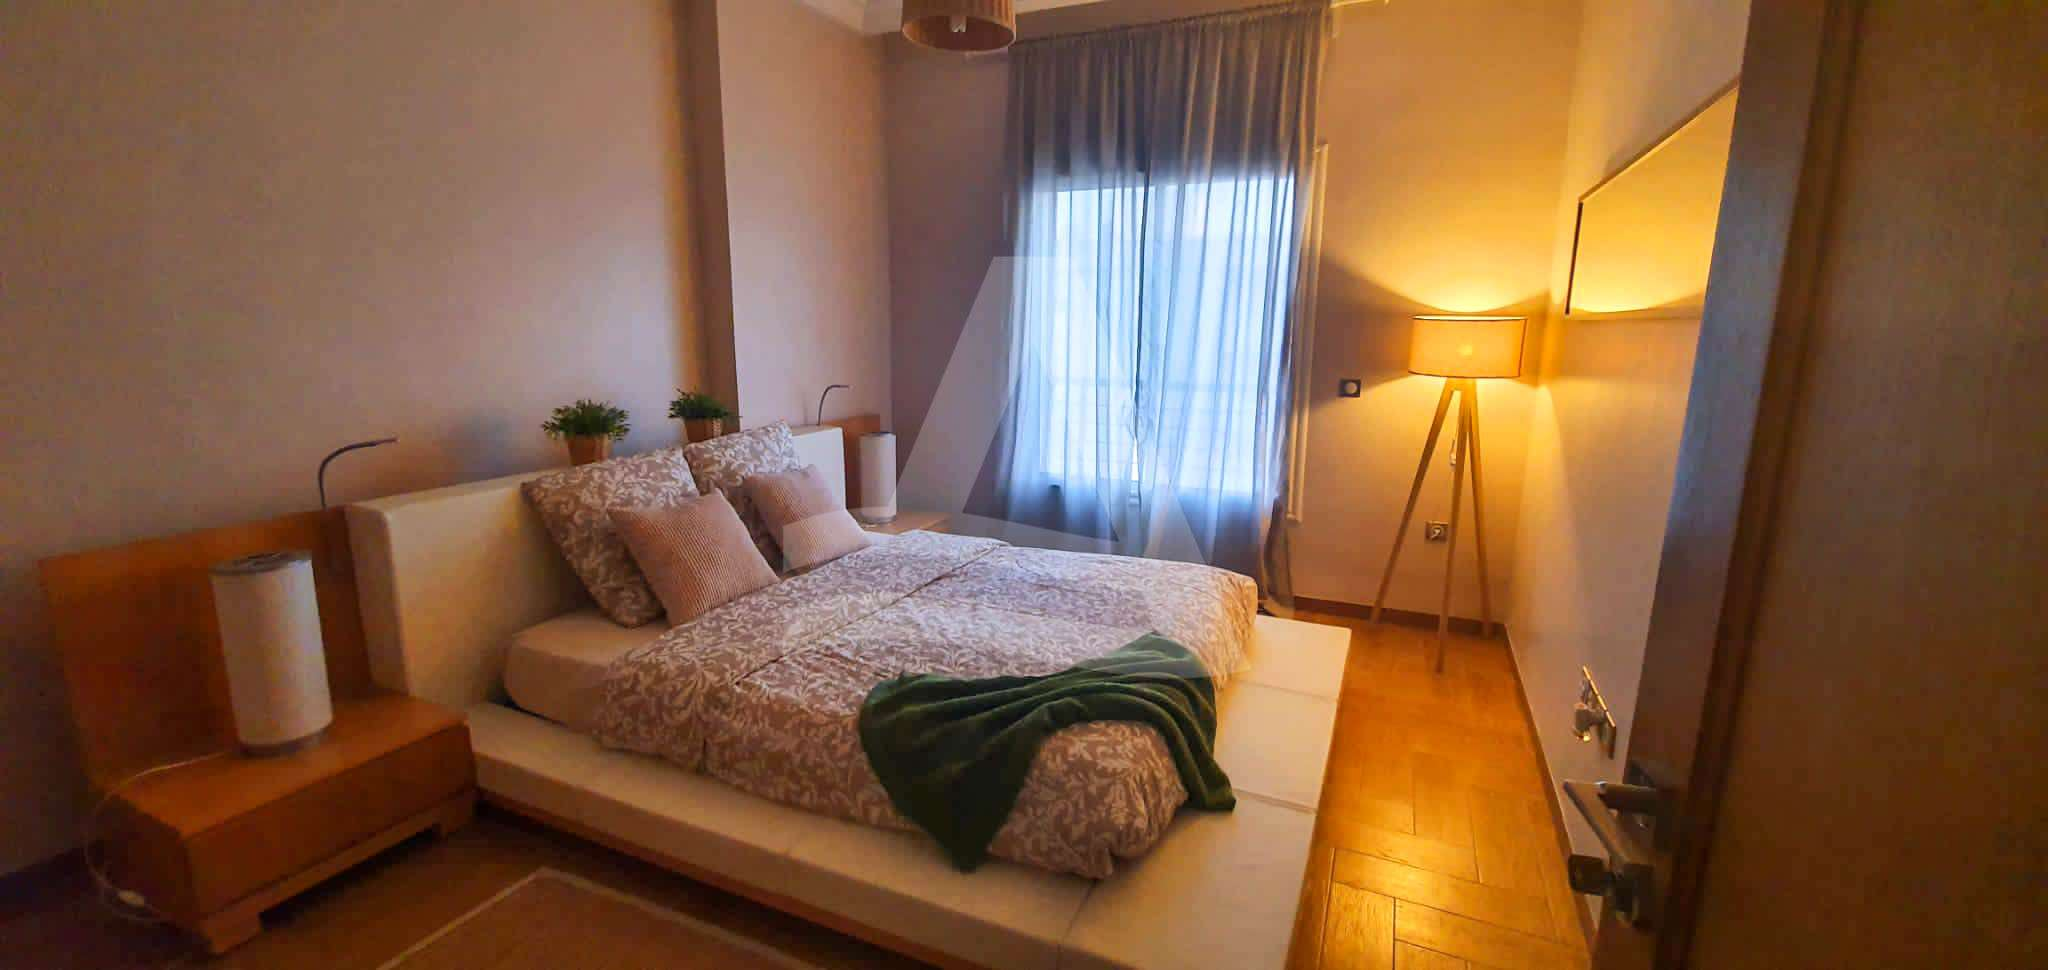 httpss3.amazonaws.comlogimoaws14098986431631090074appartement_lac_2_4_sur_8-1